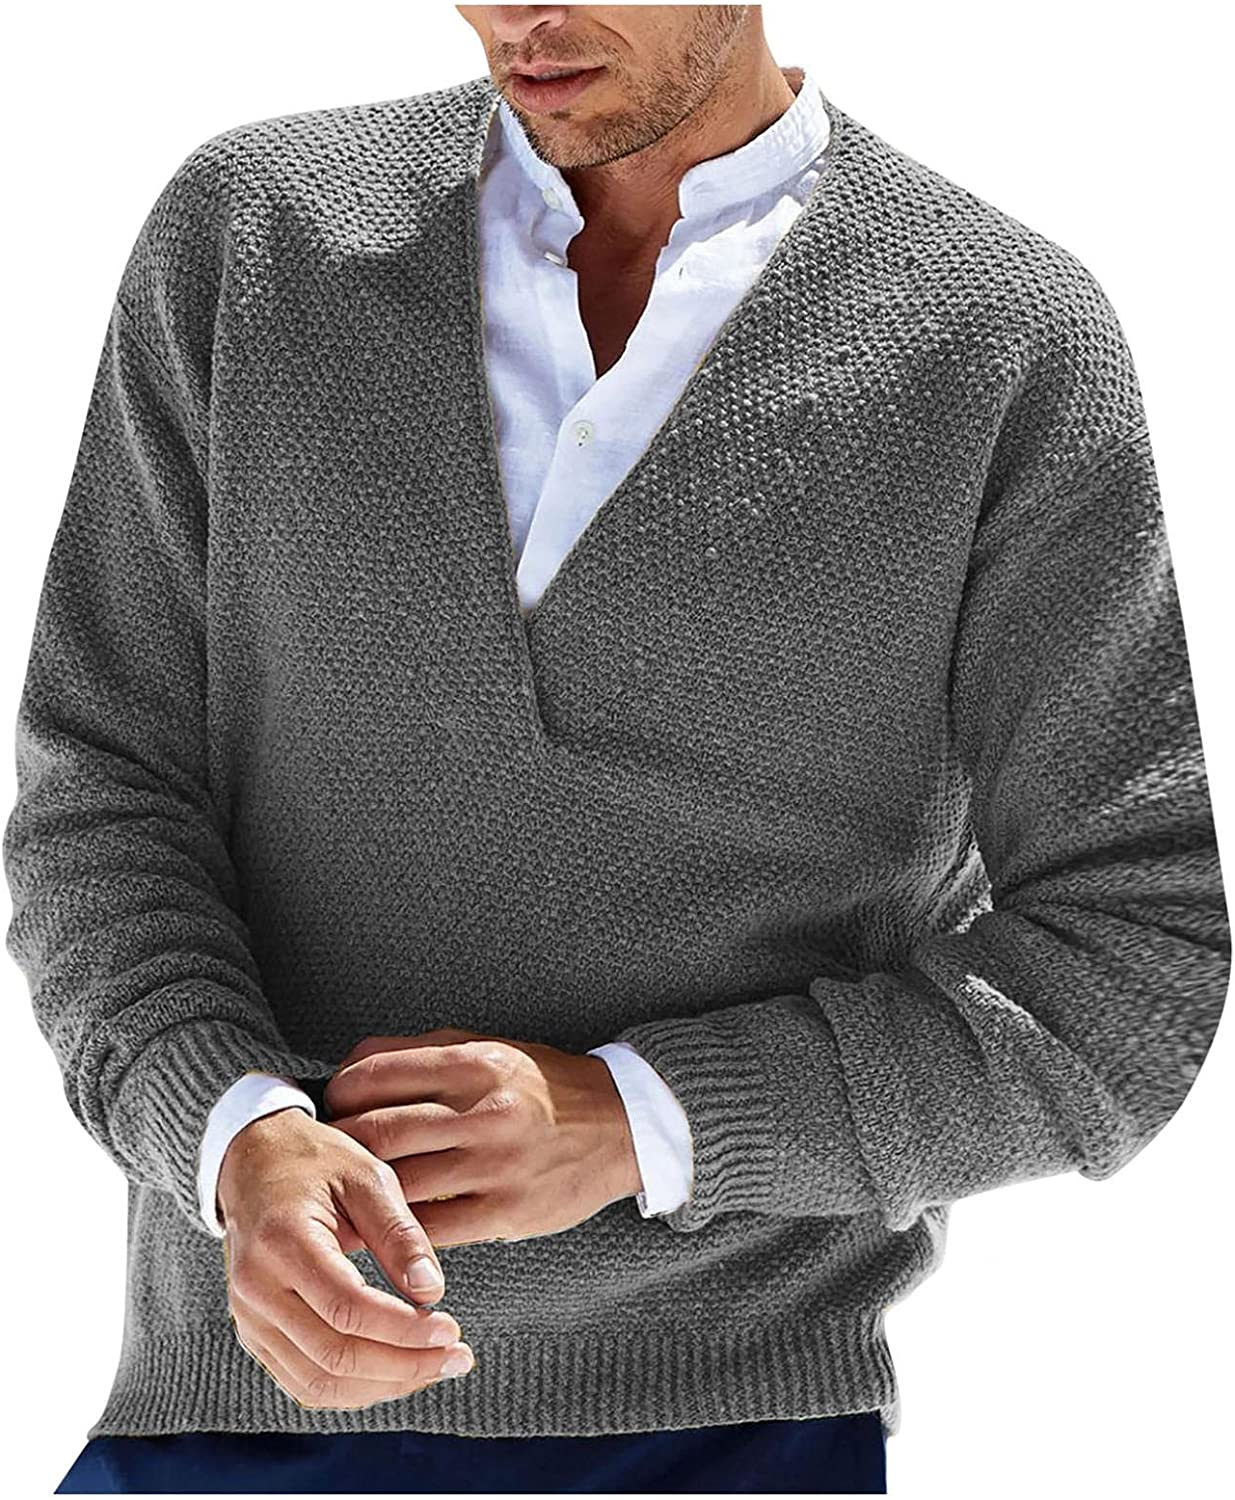 Beshion Men's Knit Cardigan Sweater Casual Slim Fit Long Sleeve Solid Color Lightweight Button Coat for Outwear Work